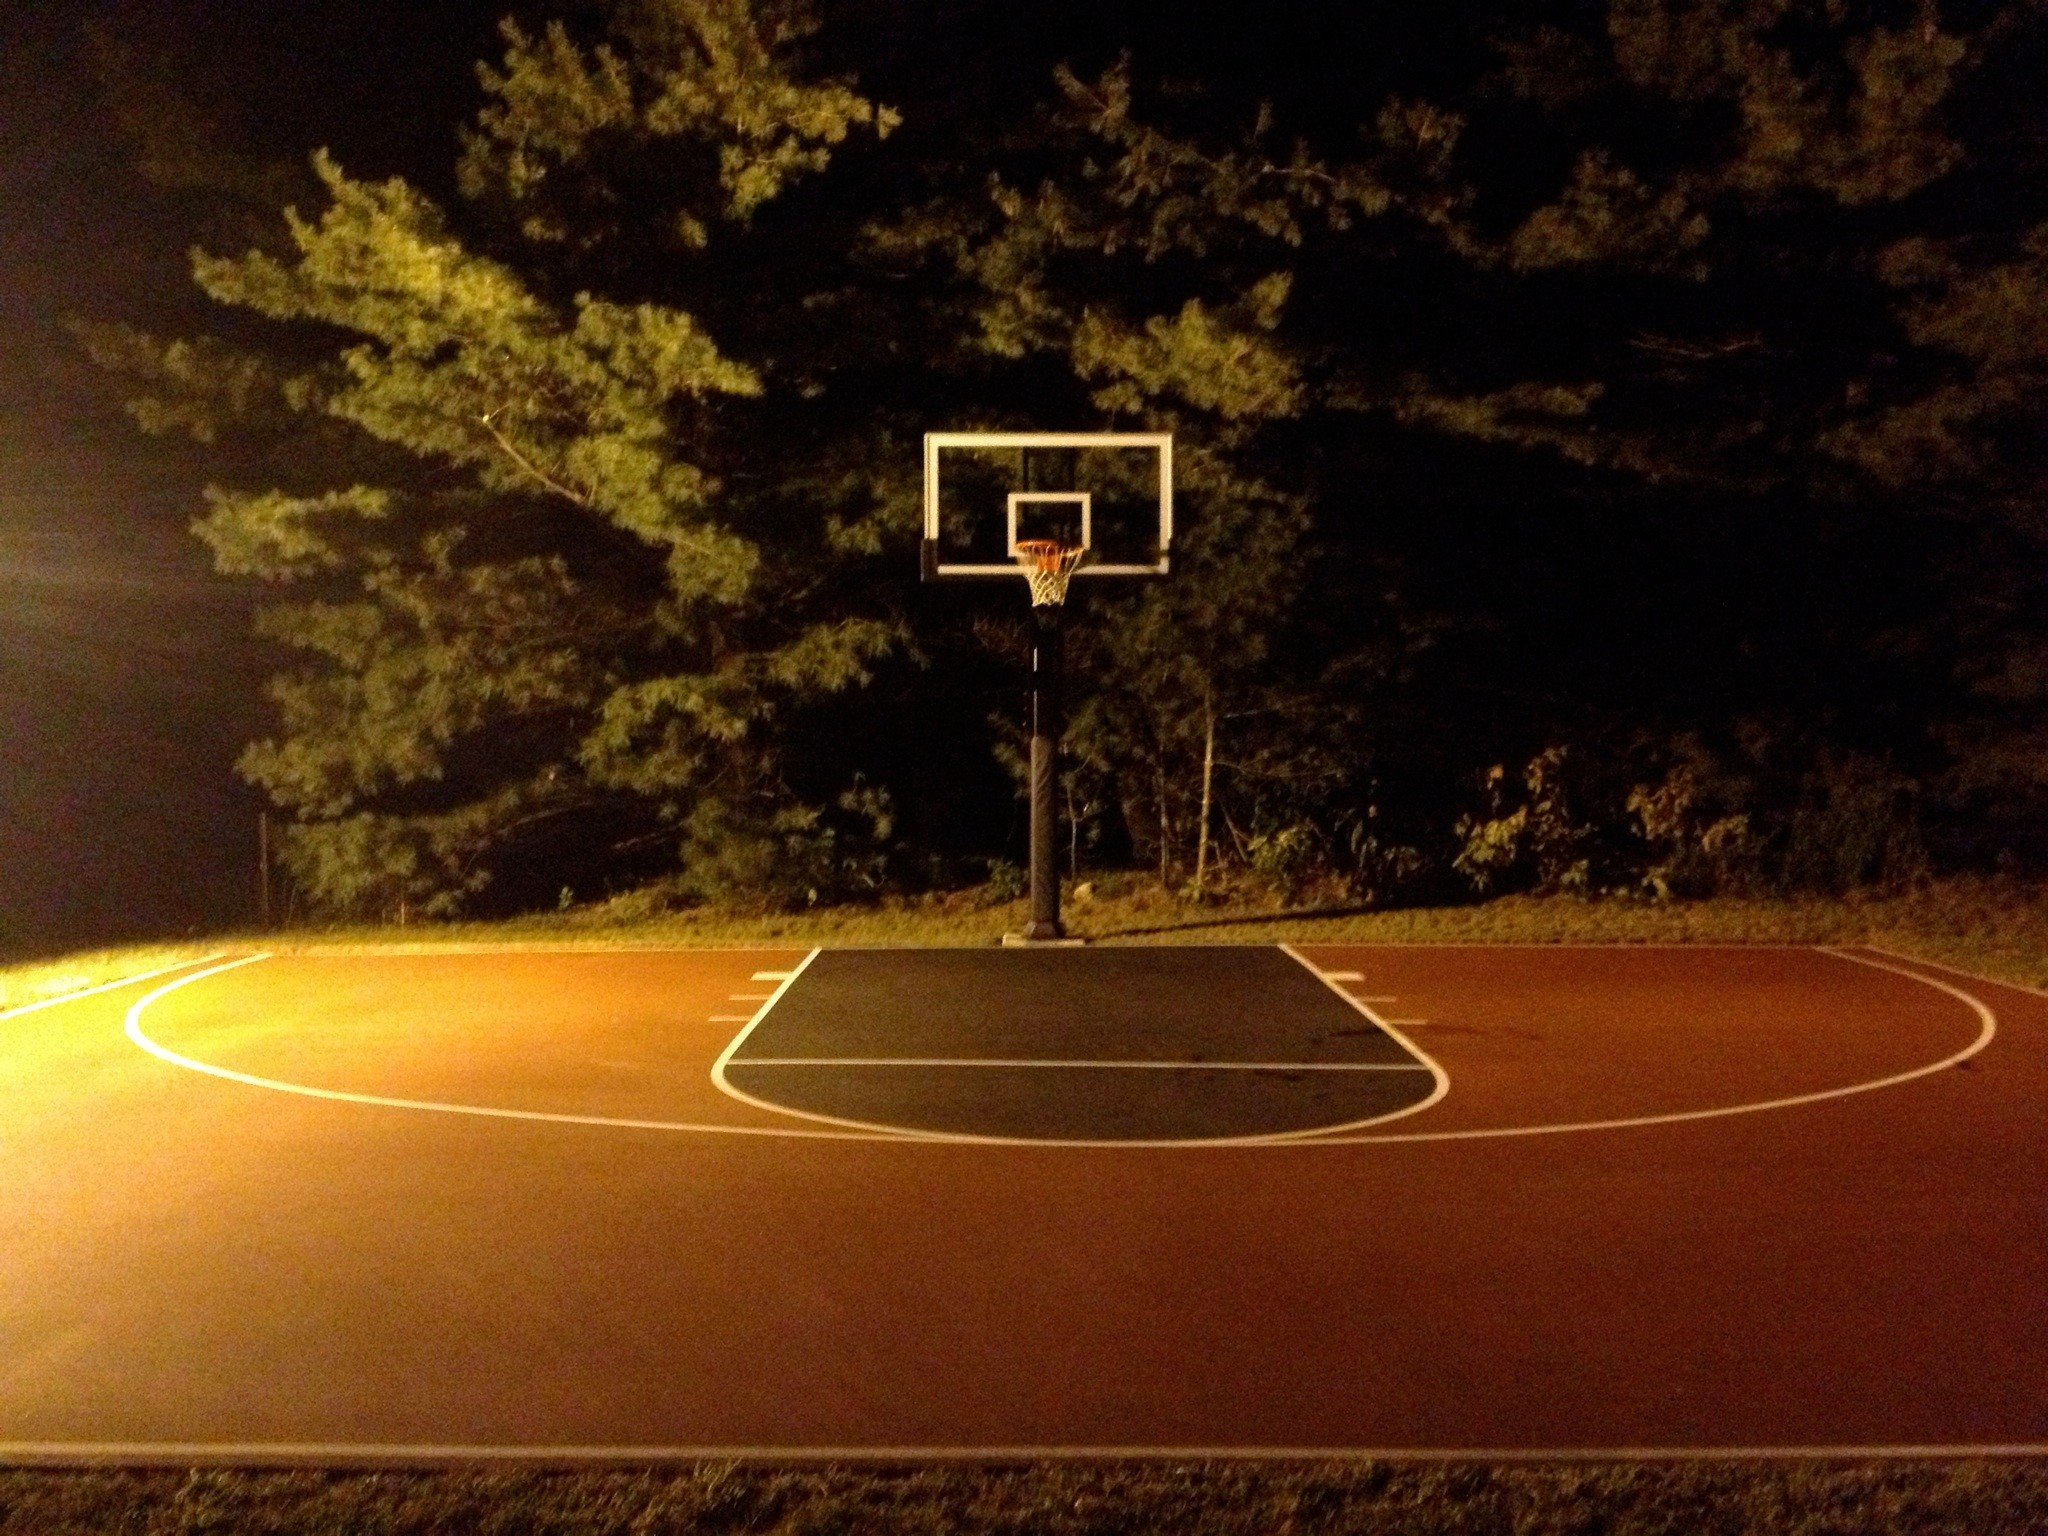 Keywords Outdoor Basketball Court Background And Tags Night Time Basketball Court 2048x1536 Download Hd Wallpaper Wallpapertip